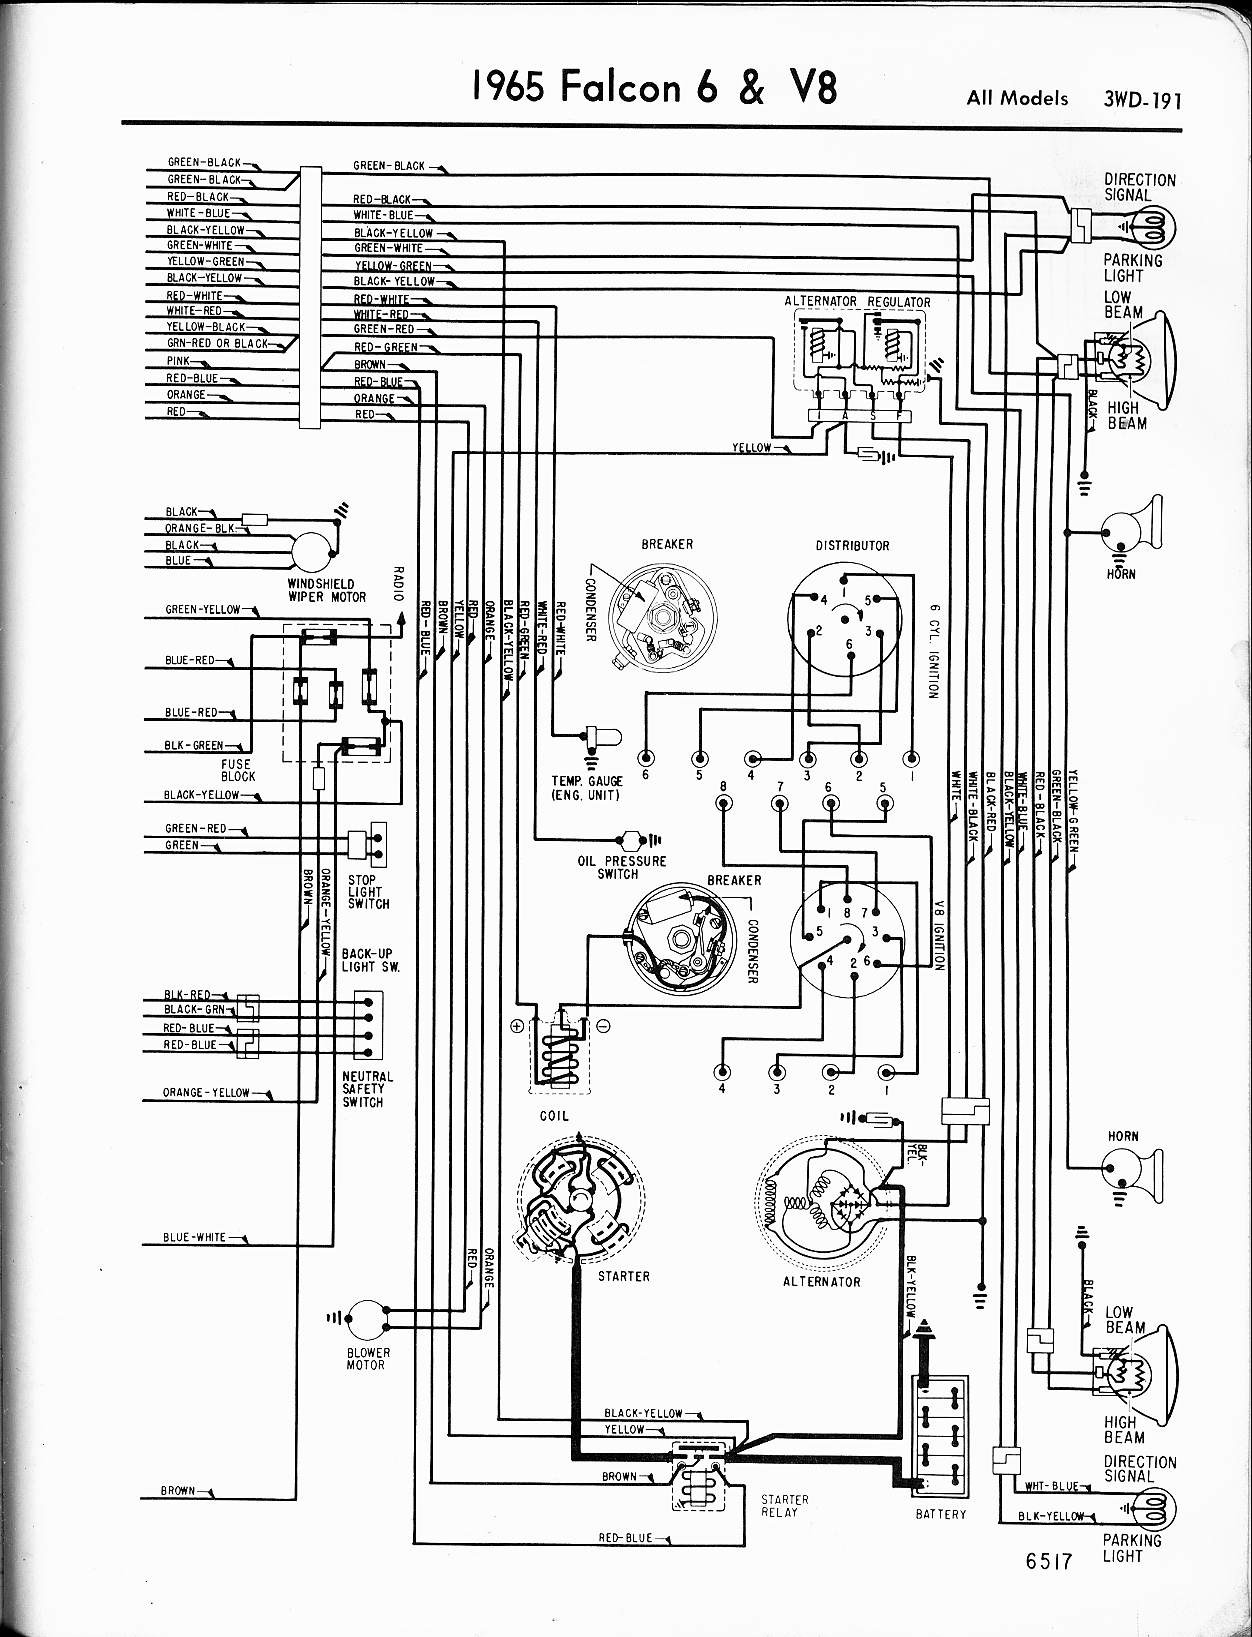 7 3 powerstroke engine wiring diagram piranha dual battery system injector imageresizertool com